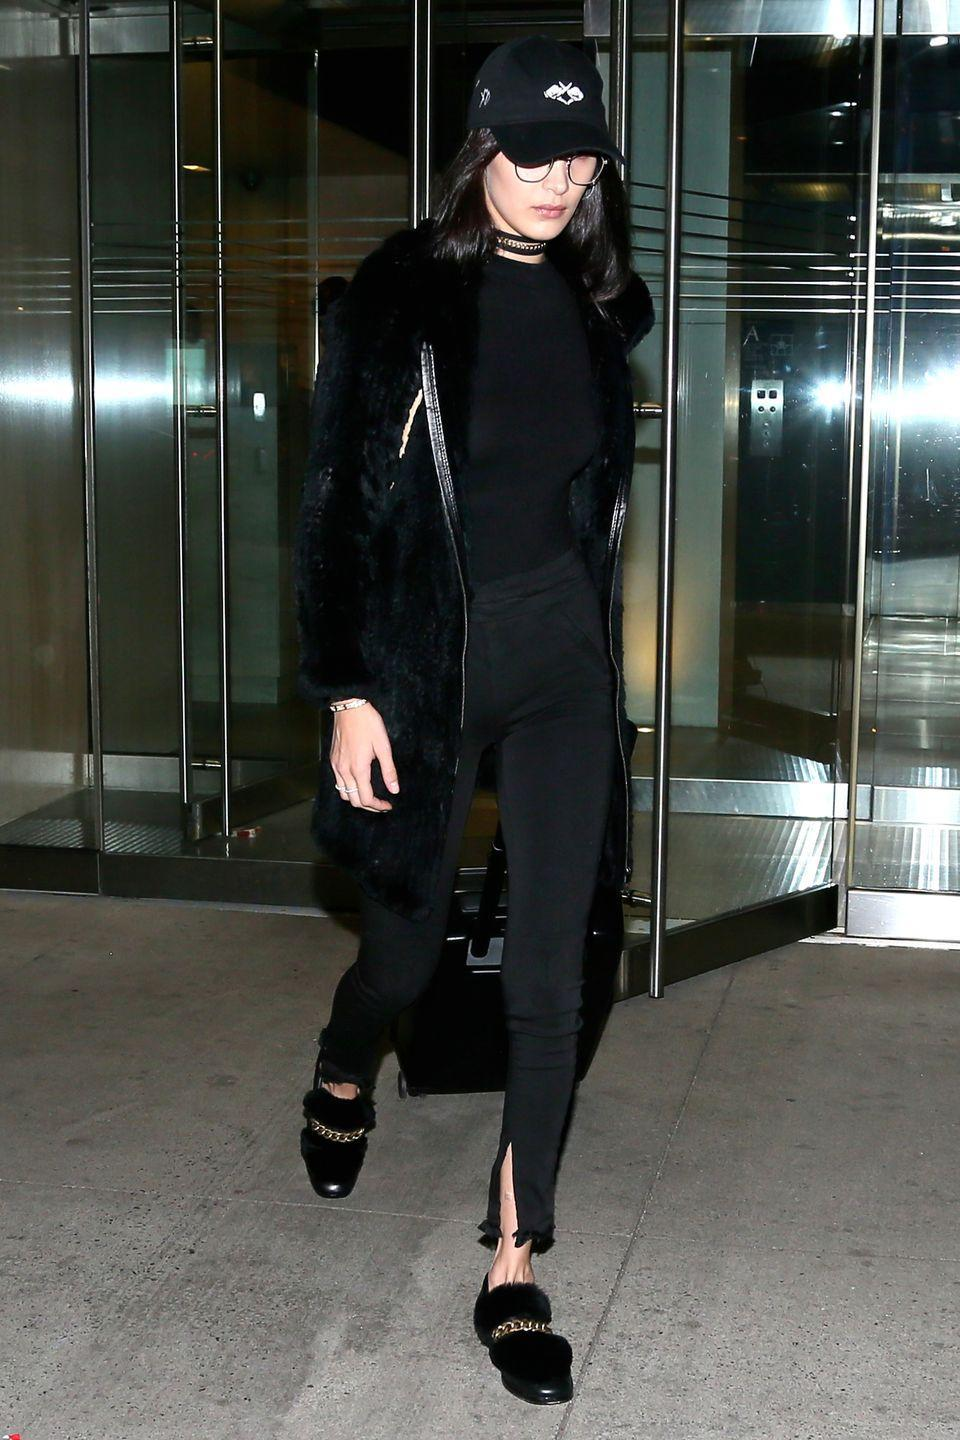 <p>In a black fur coat, string and chainlink choker, a black top, skinny jeans with a slit at the ankle, furry loafers with a chain accent, The Weeknd merch baseball cap and round wire-rimmed glasses while out in NYC.</p>